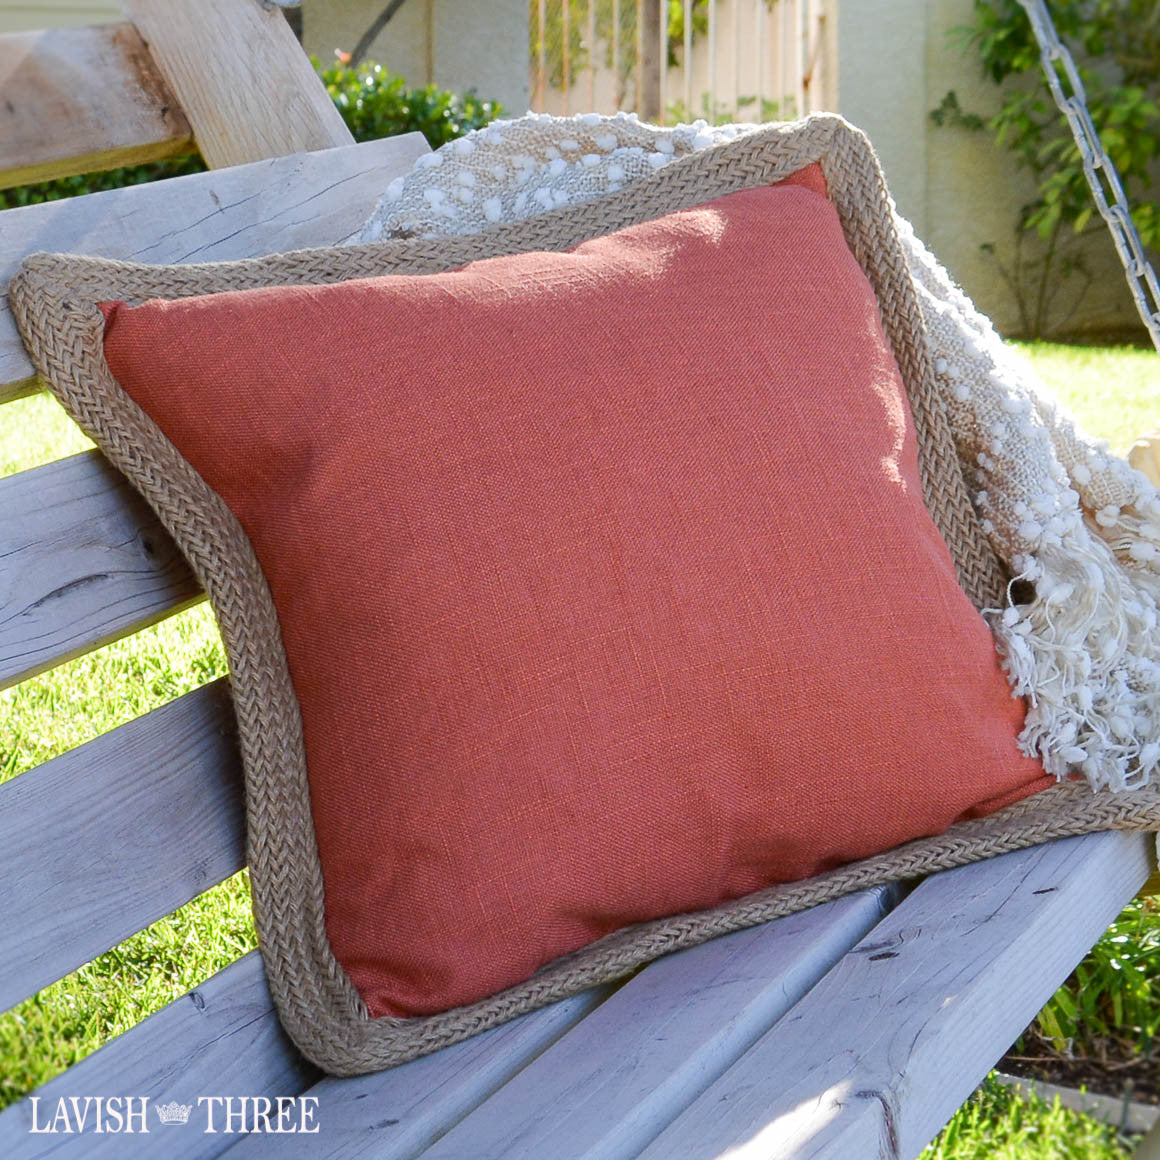 Coral orange decorator throw accent pillow with jute edge Lavish three 3